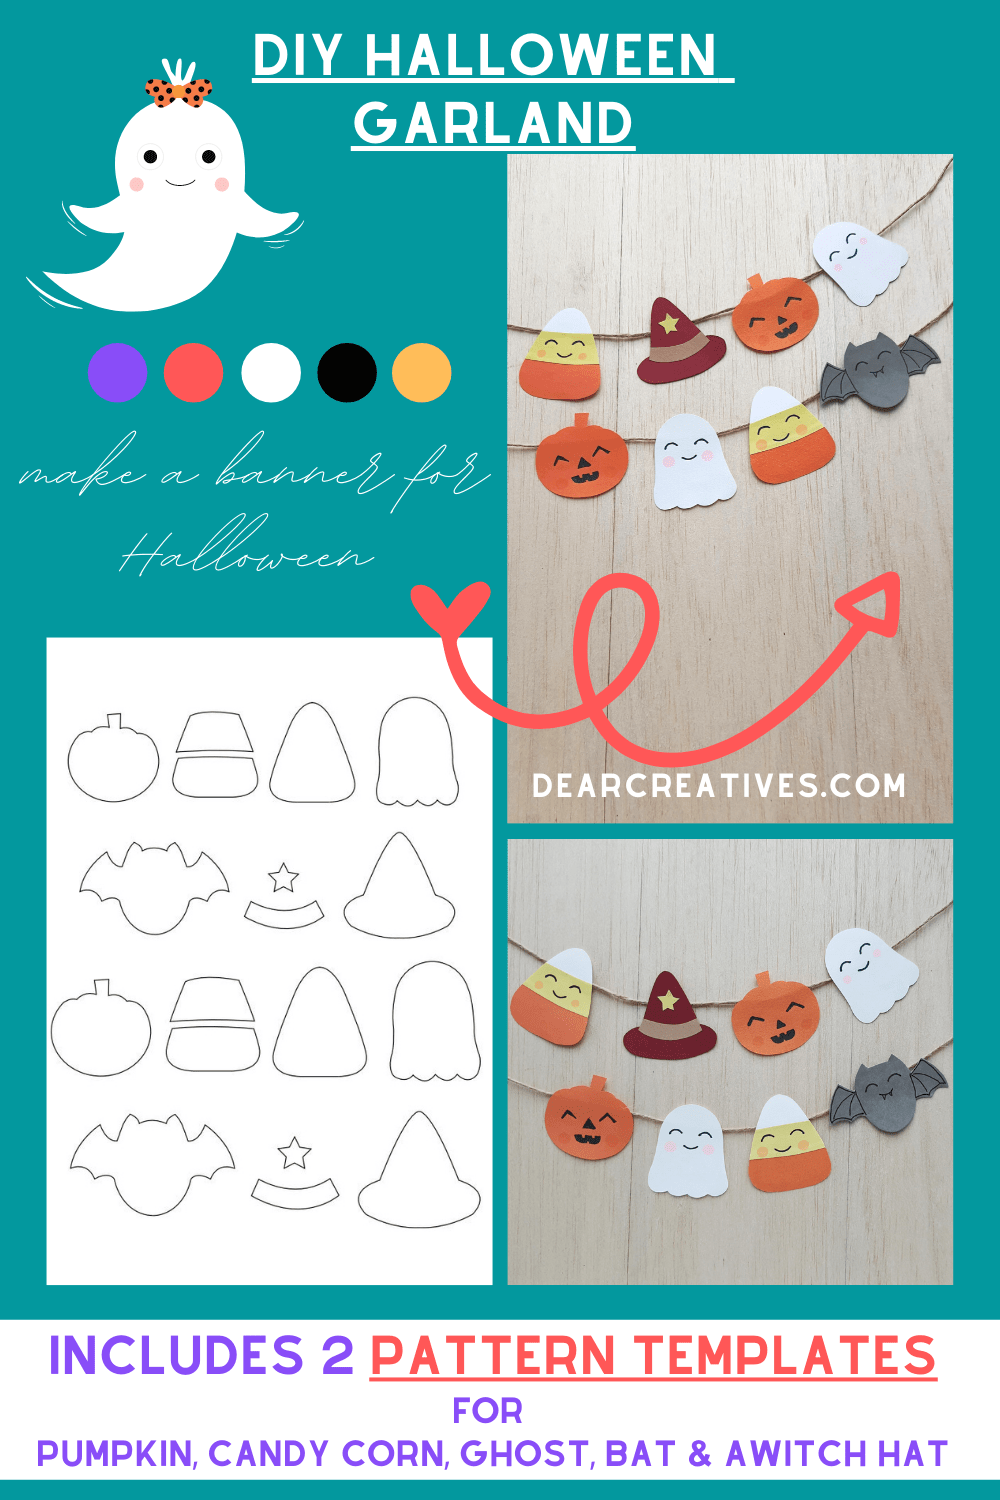 Make a Halloween Banner - This DIY includes two different sizes of pattern templates for a pumpkin, candy corn, ghost, bat and a witch hat. See how to make it!